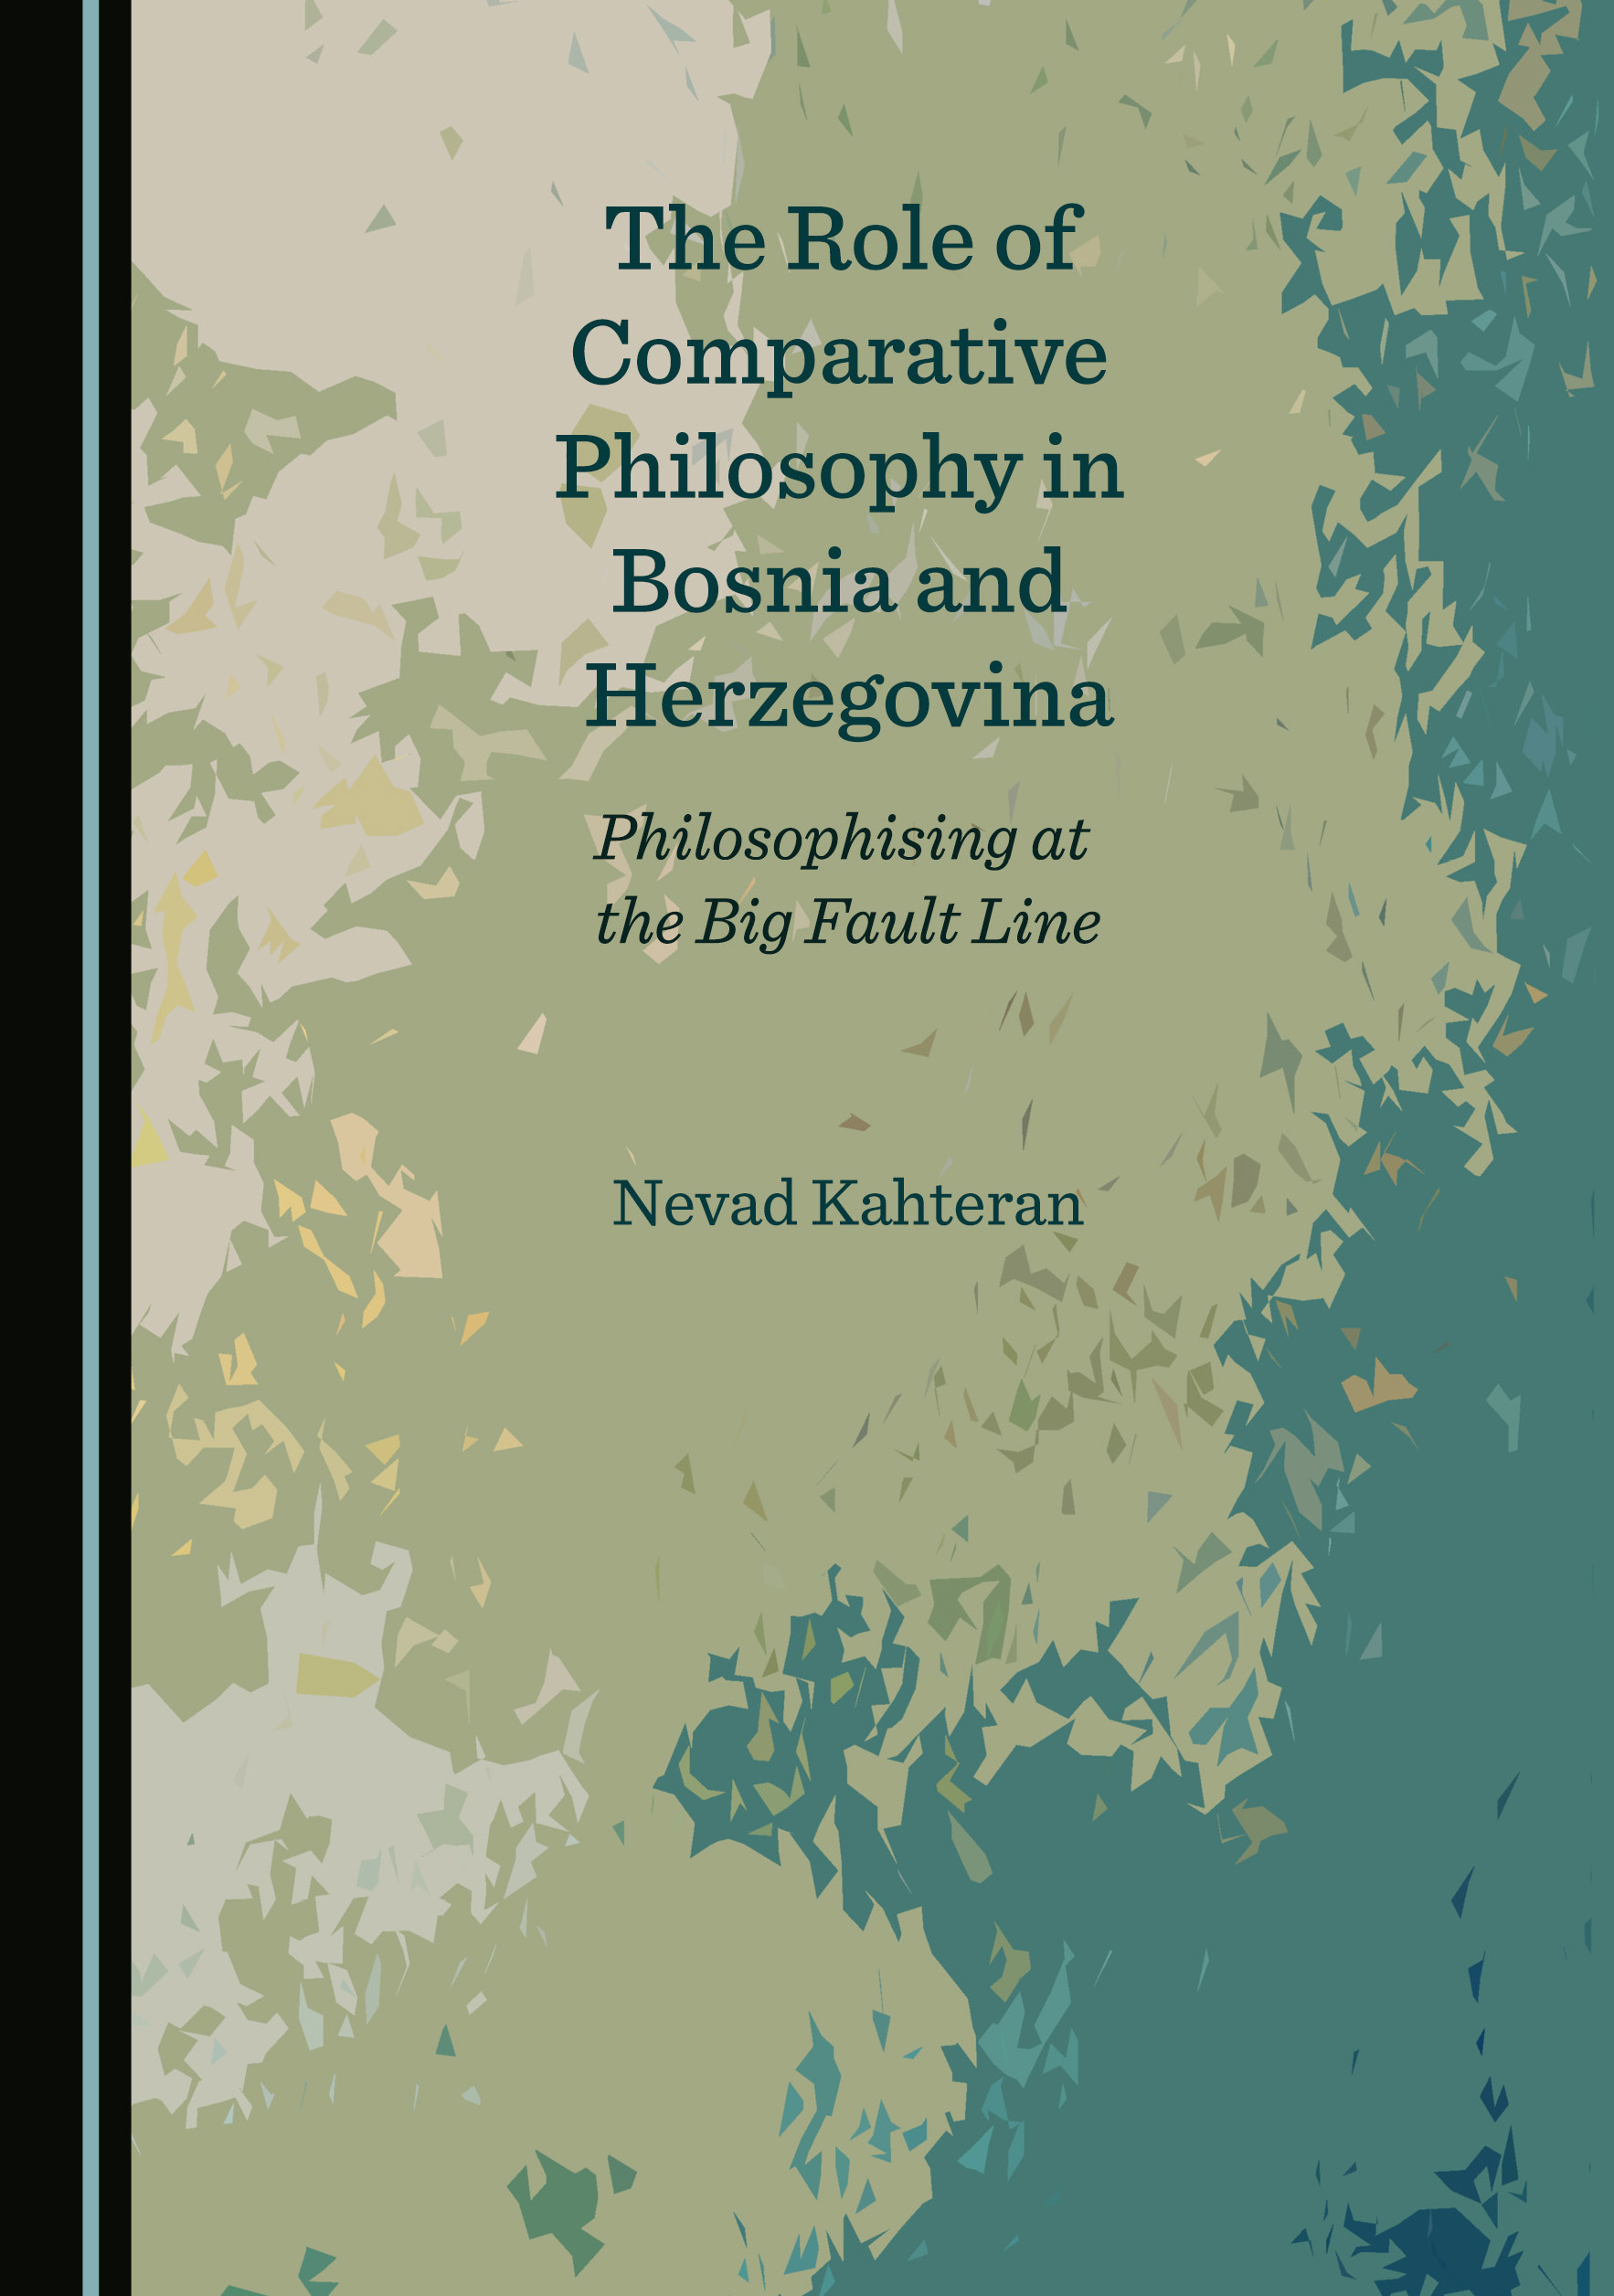 The Role of Comparative Philosophy in Bosnia and Herzegovina: Philosophising at the Big Fault Line